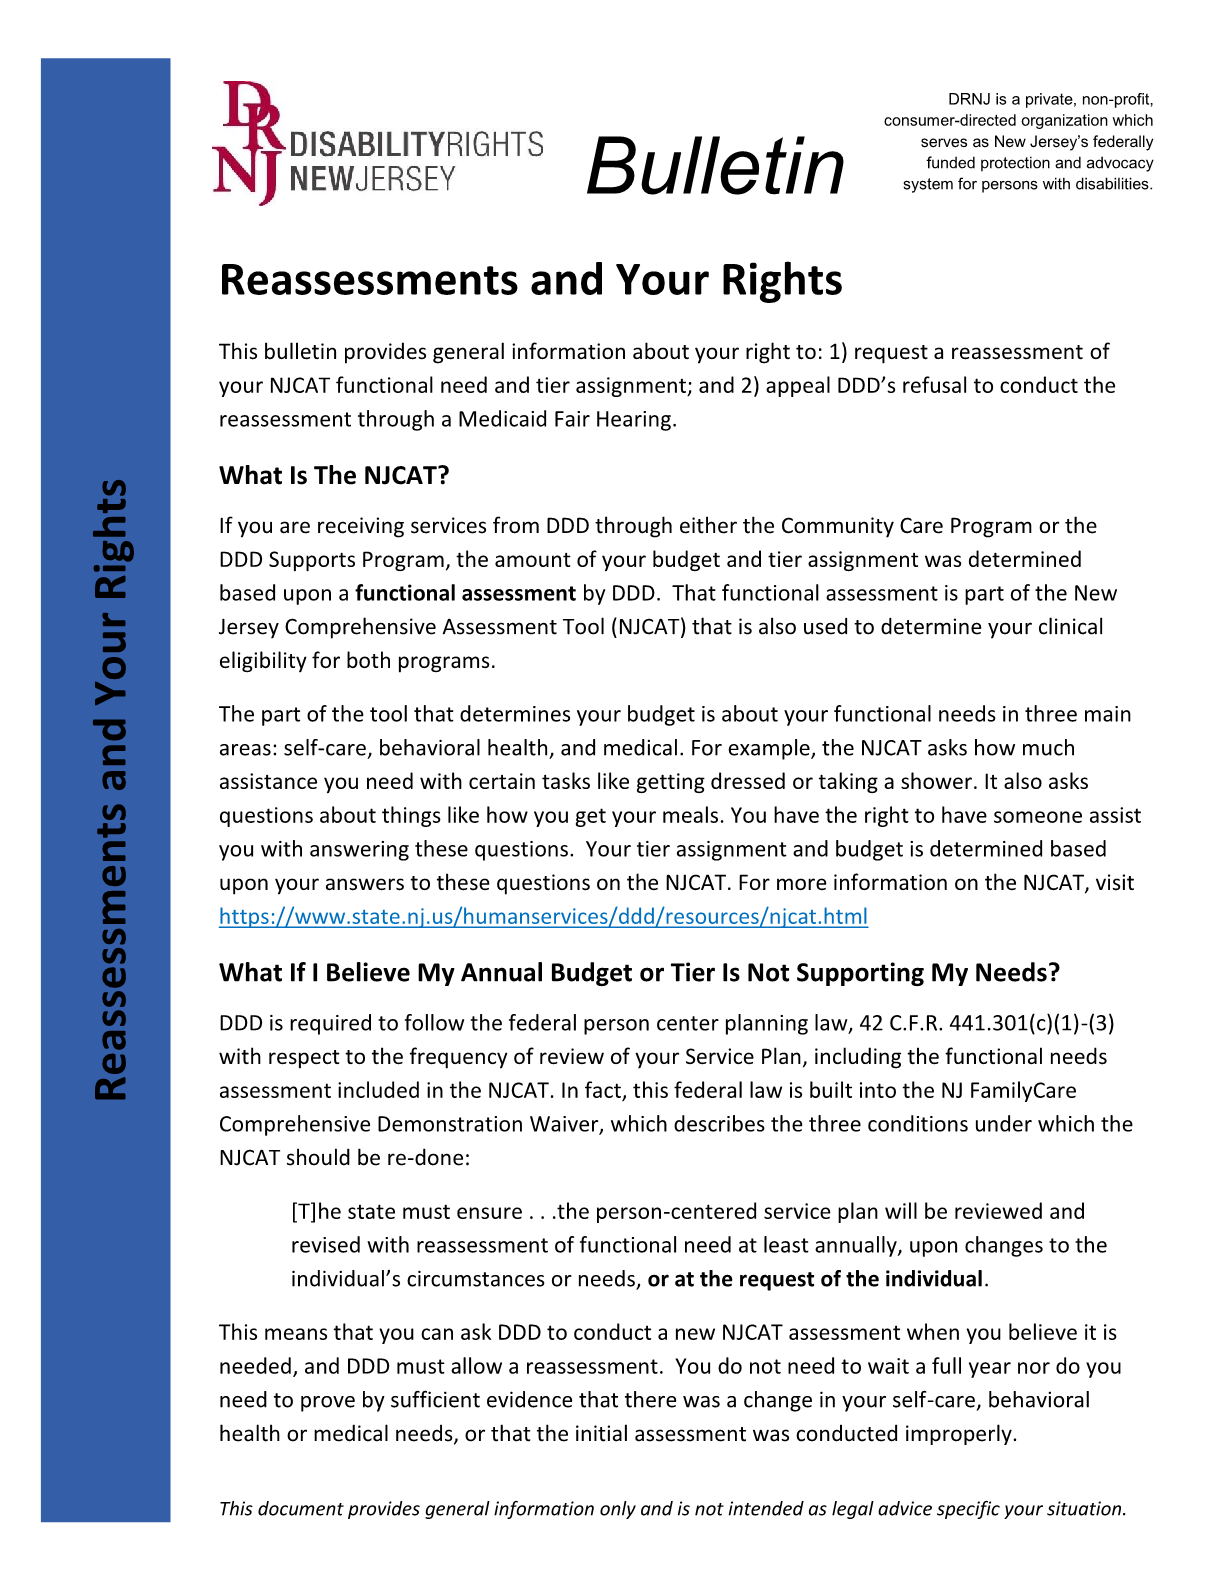 Disability Rights New Jersey's Bulletin On - The NJCAT: Reassessments and Your Rights